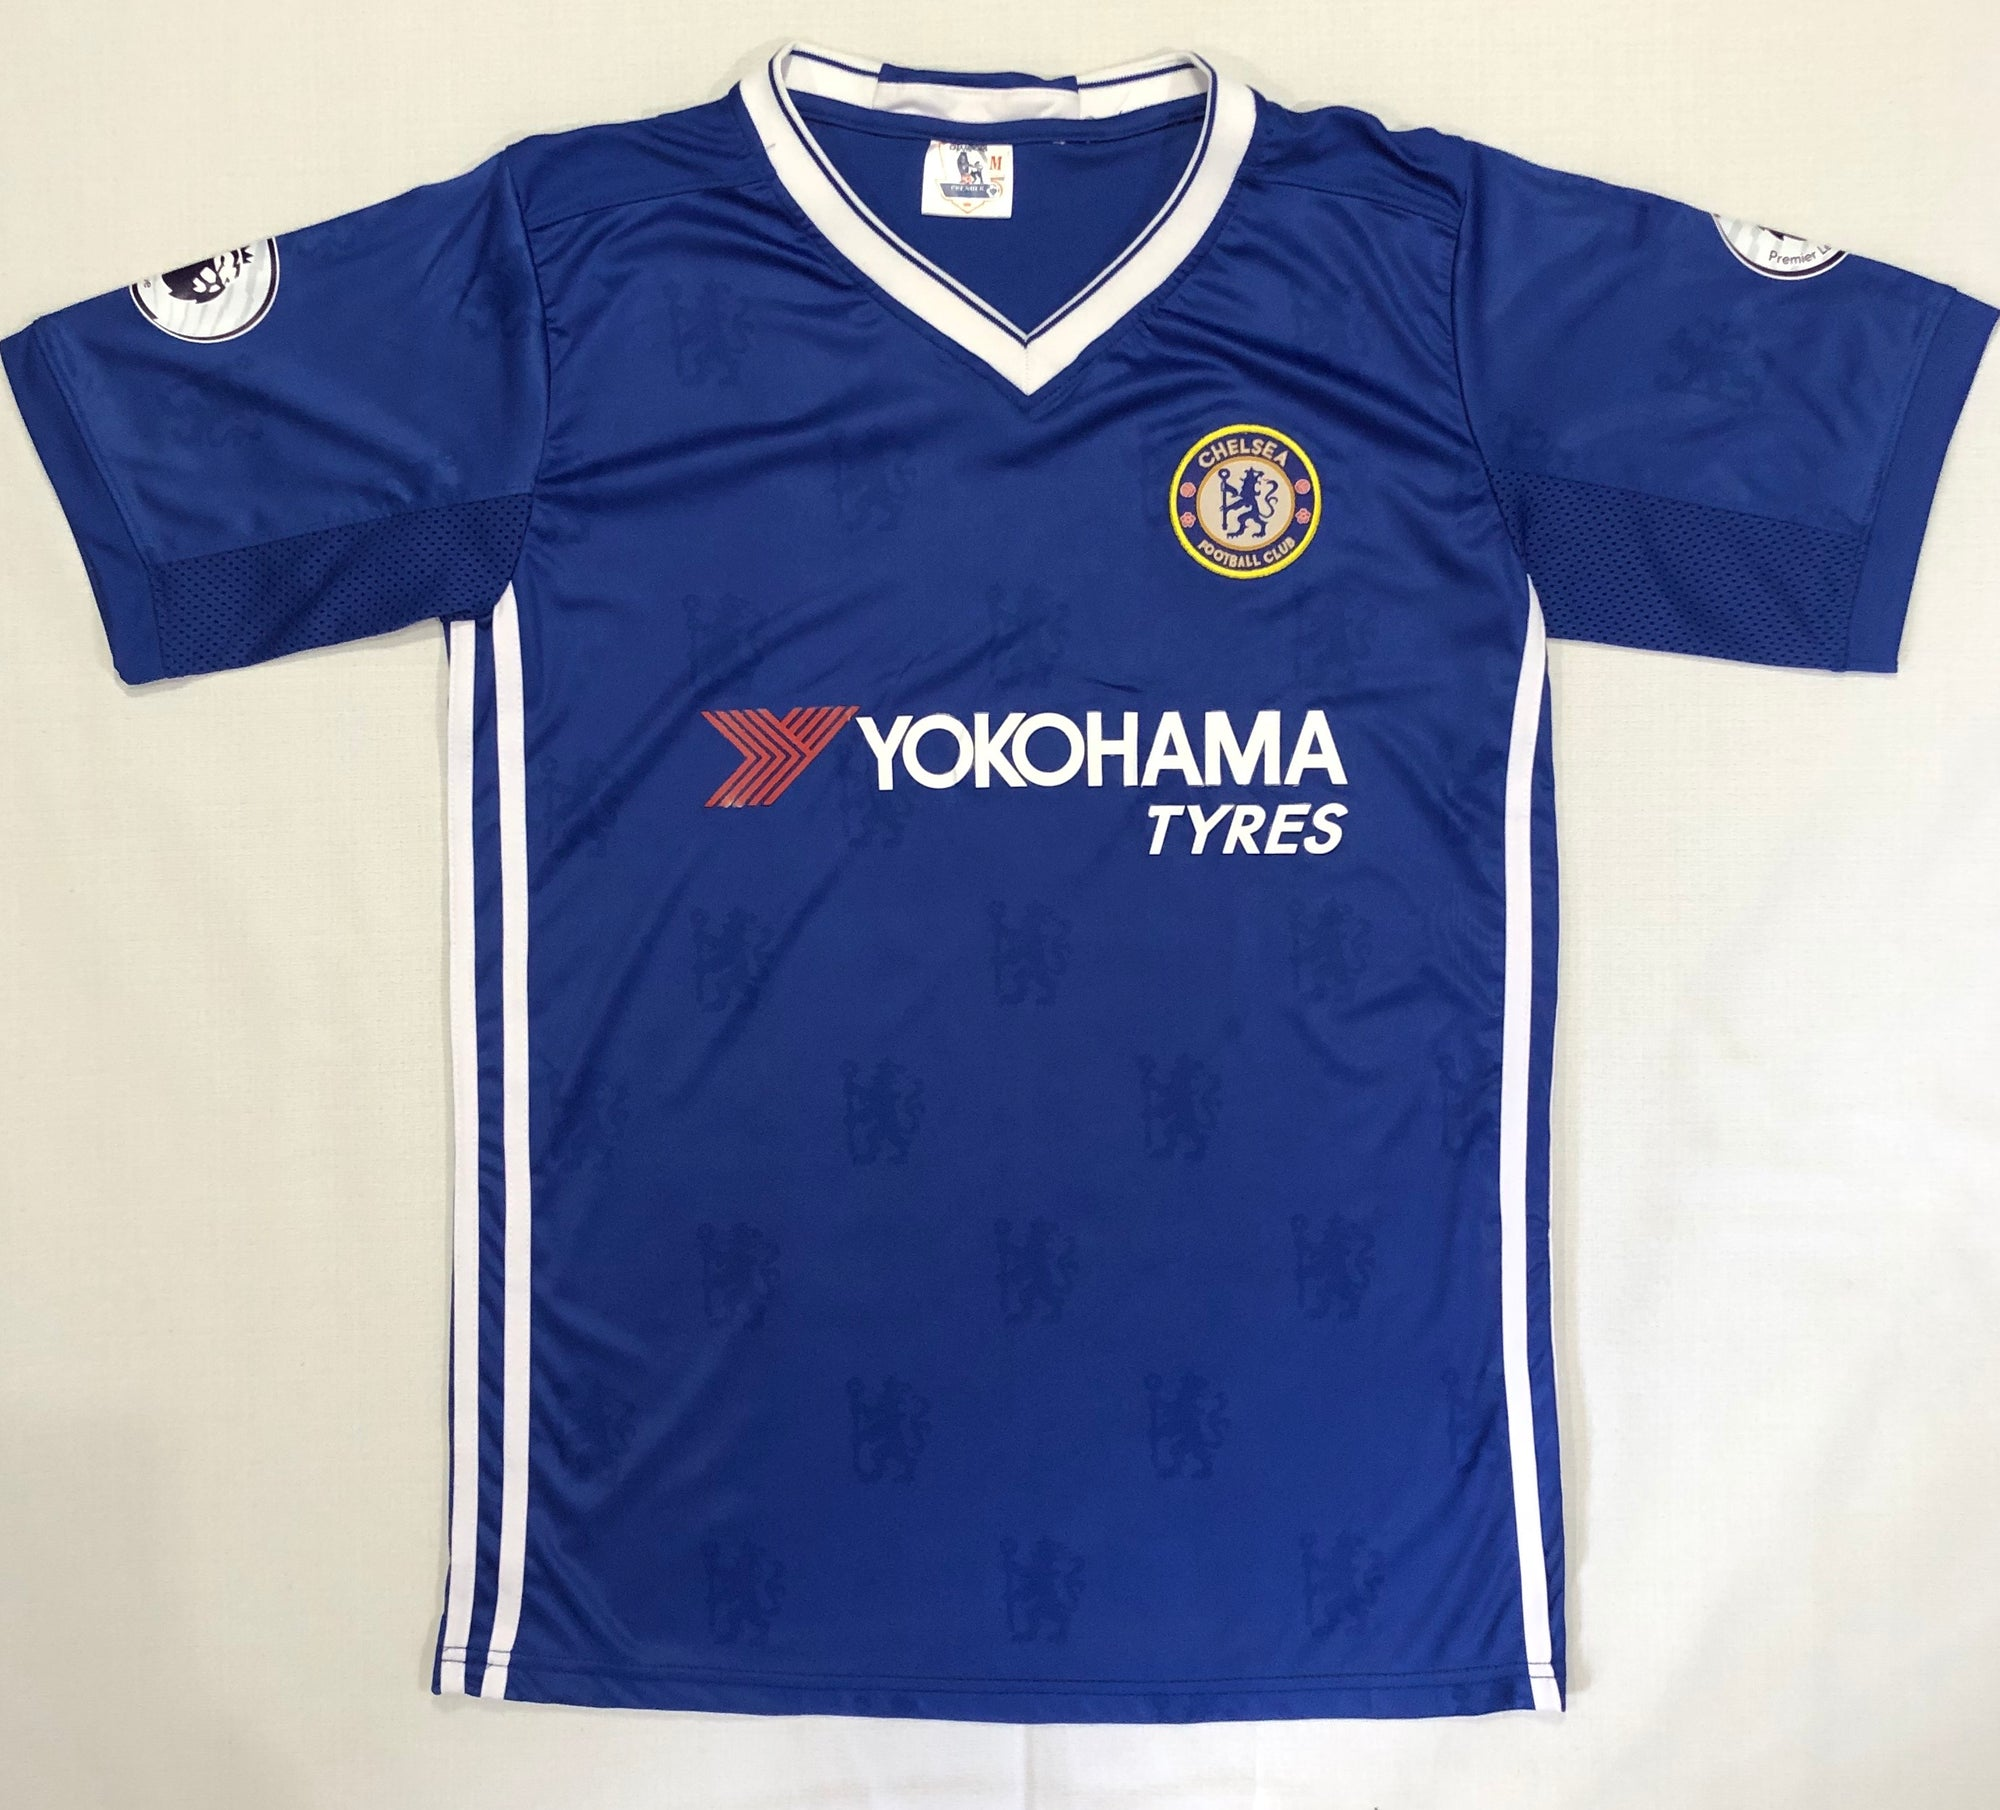 Chelsea Home 2016/17 Adult Shirt ~ Replica Version